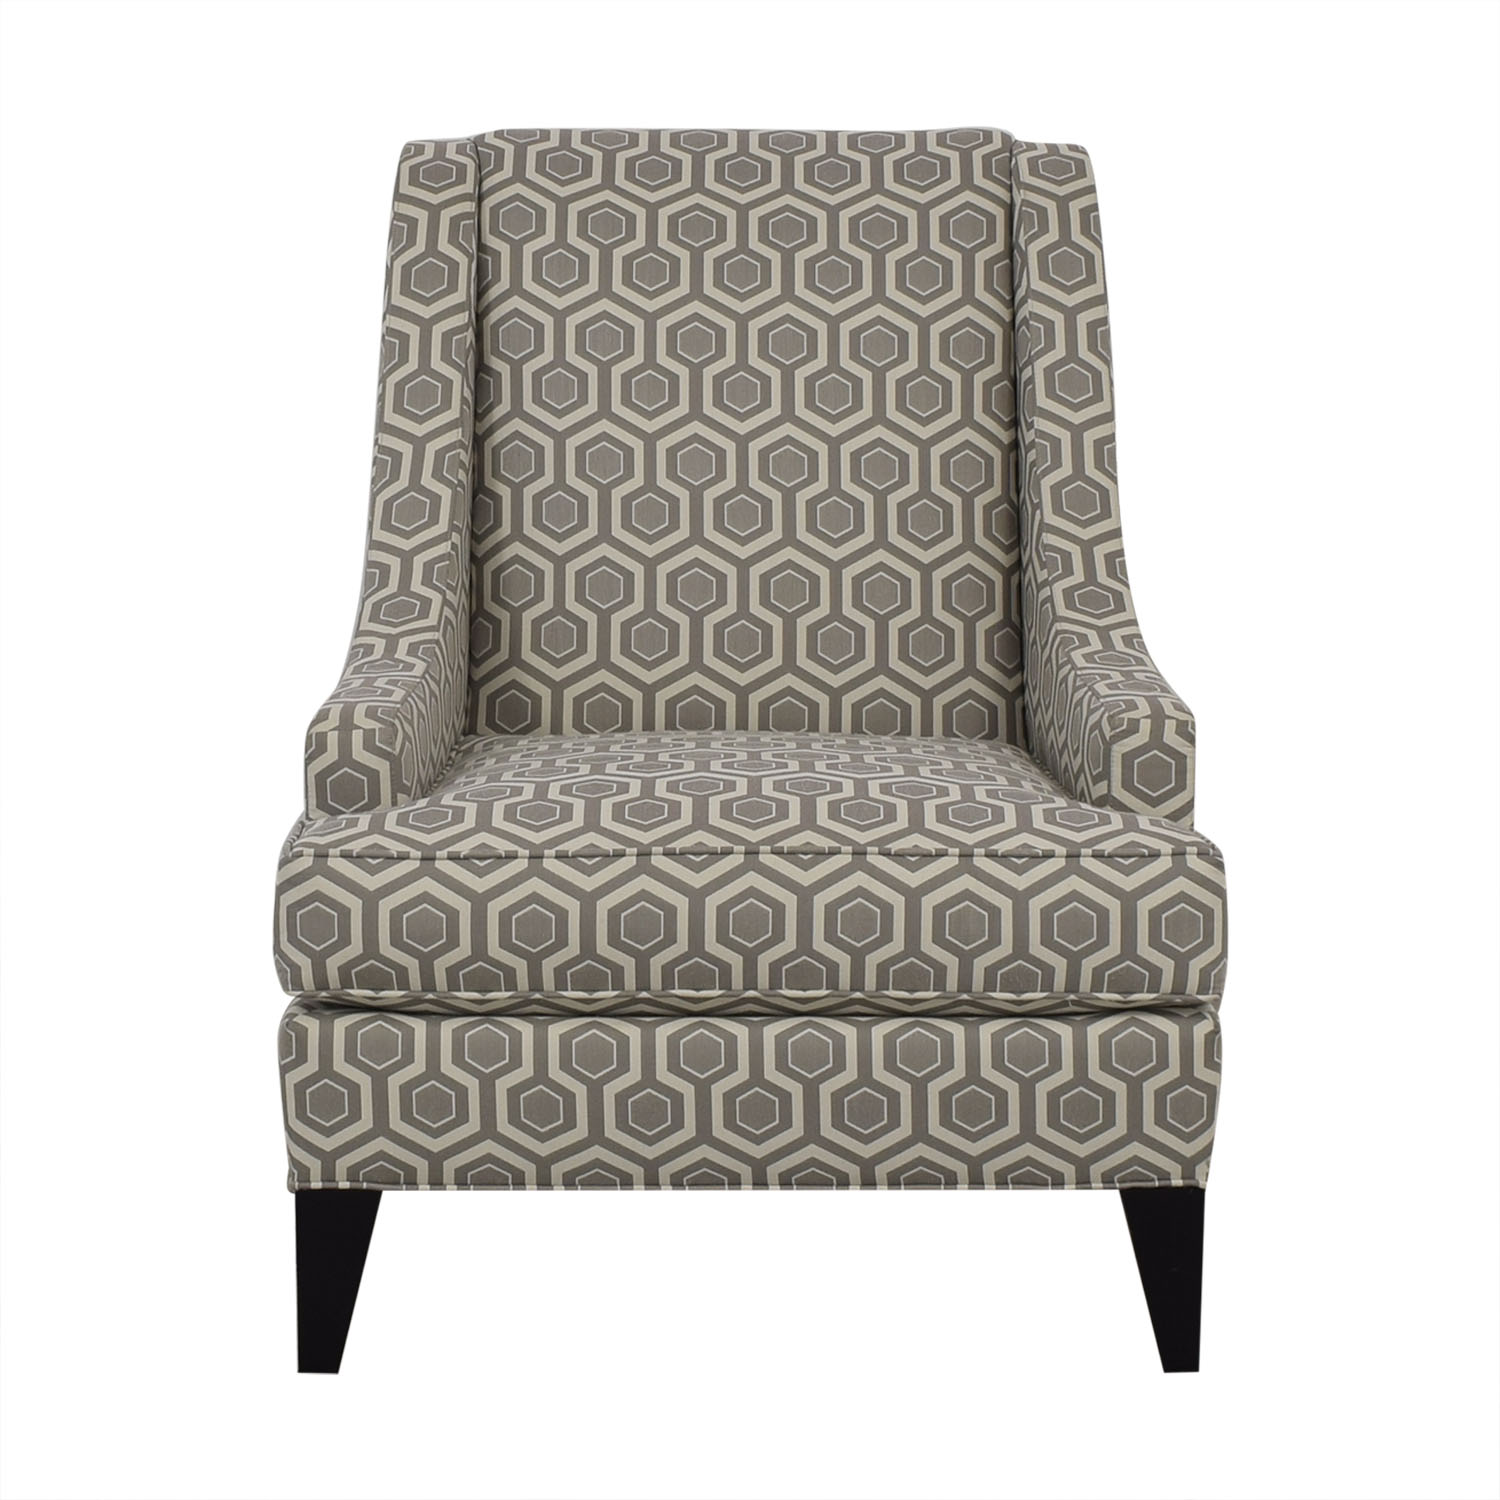 Ethan Allen Ethan Allen Emerson Chair on sale